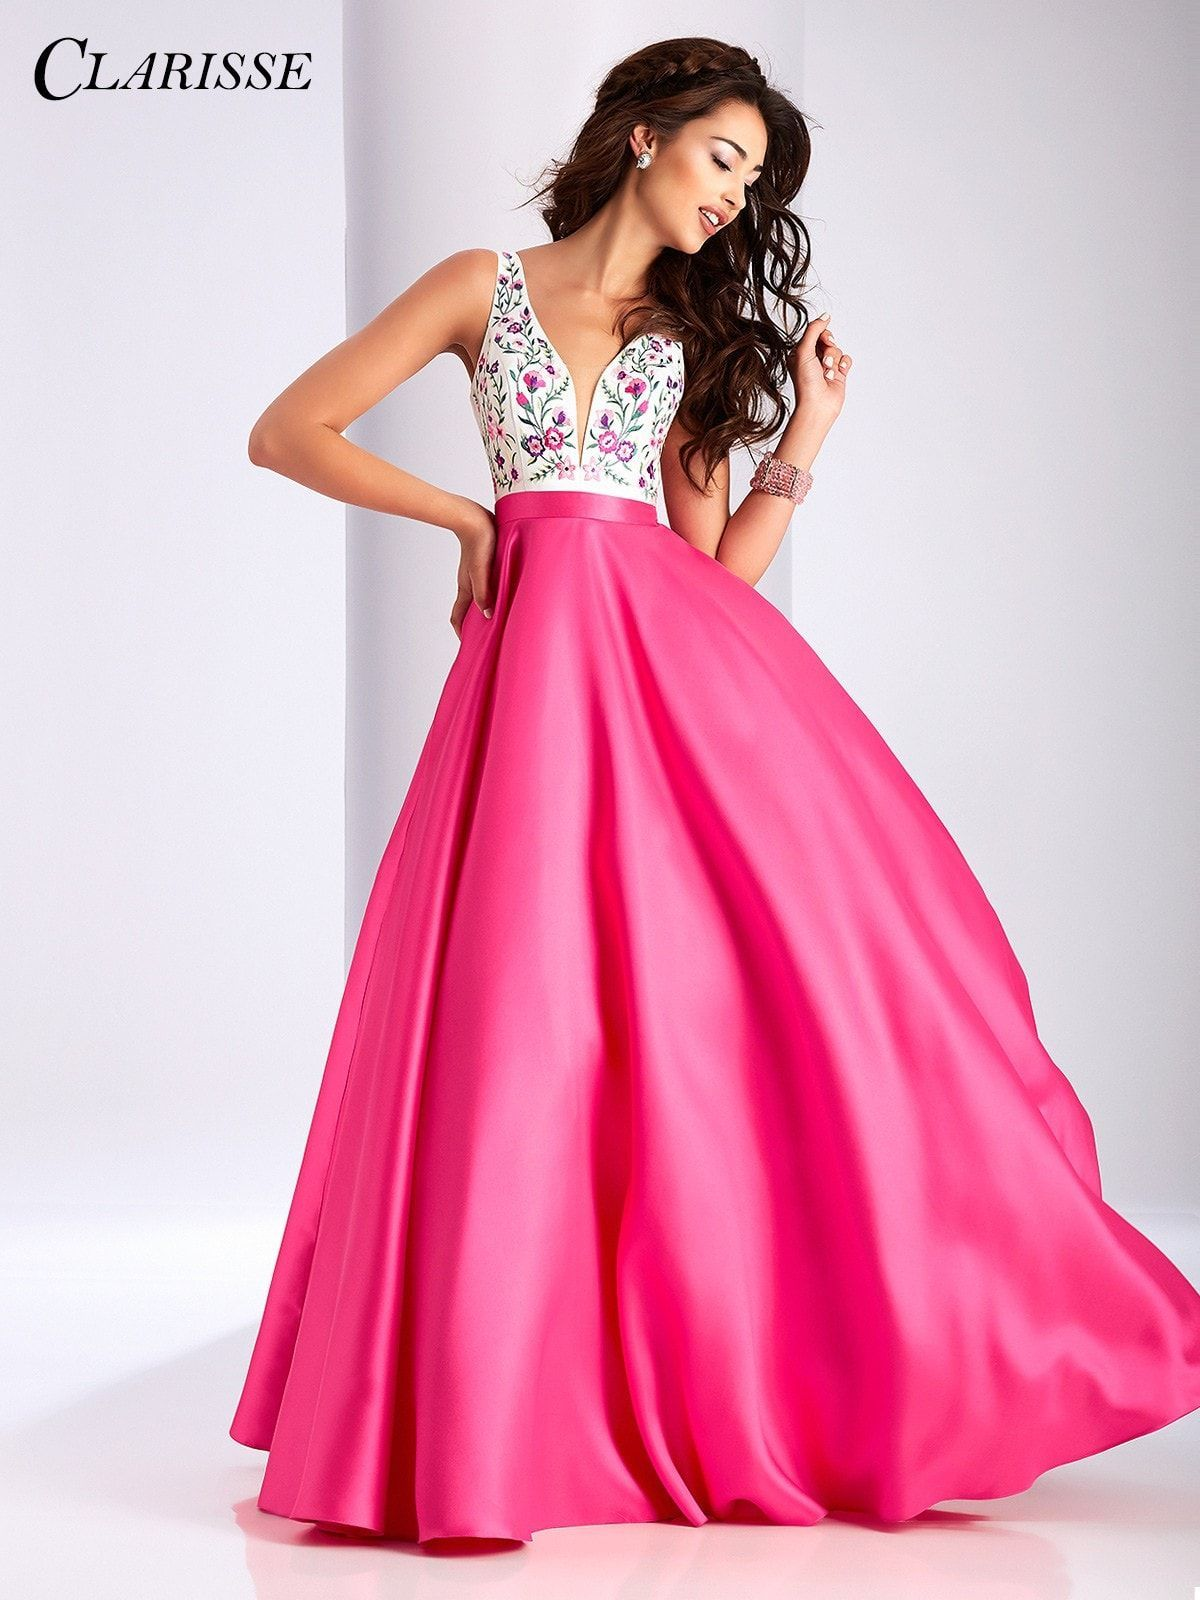 Clarisse Prom 3197 Cerise/Multi V-Neck Low Back Prom Dress ...